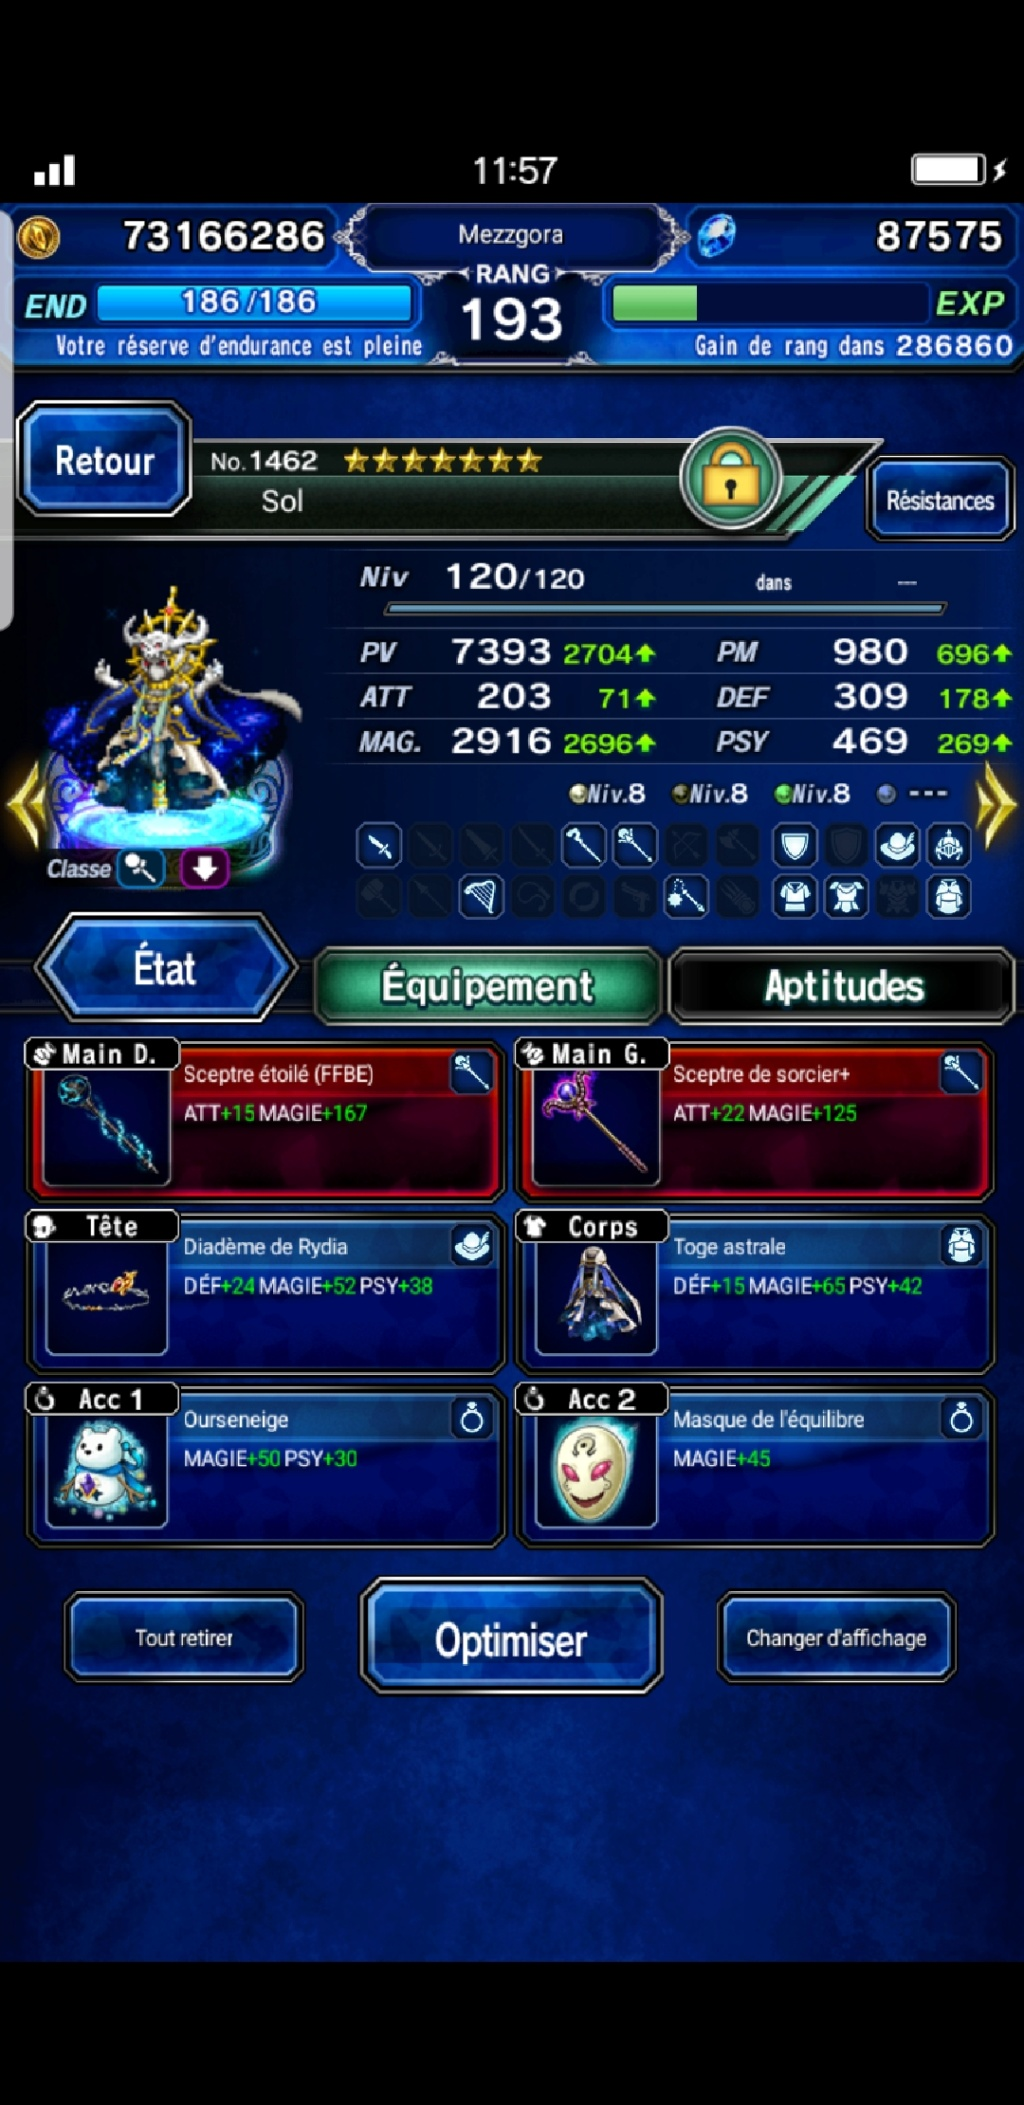 Invocations du moment - FFBE (Sol) - du 13/09 au 27/09/19 - Page 2 Scree380